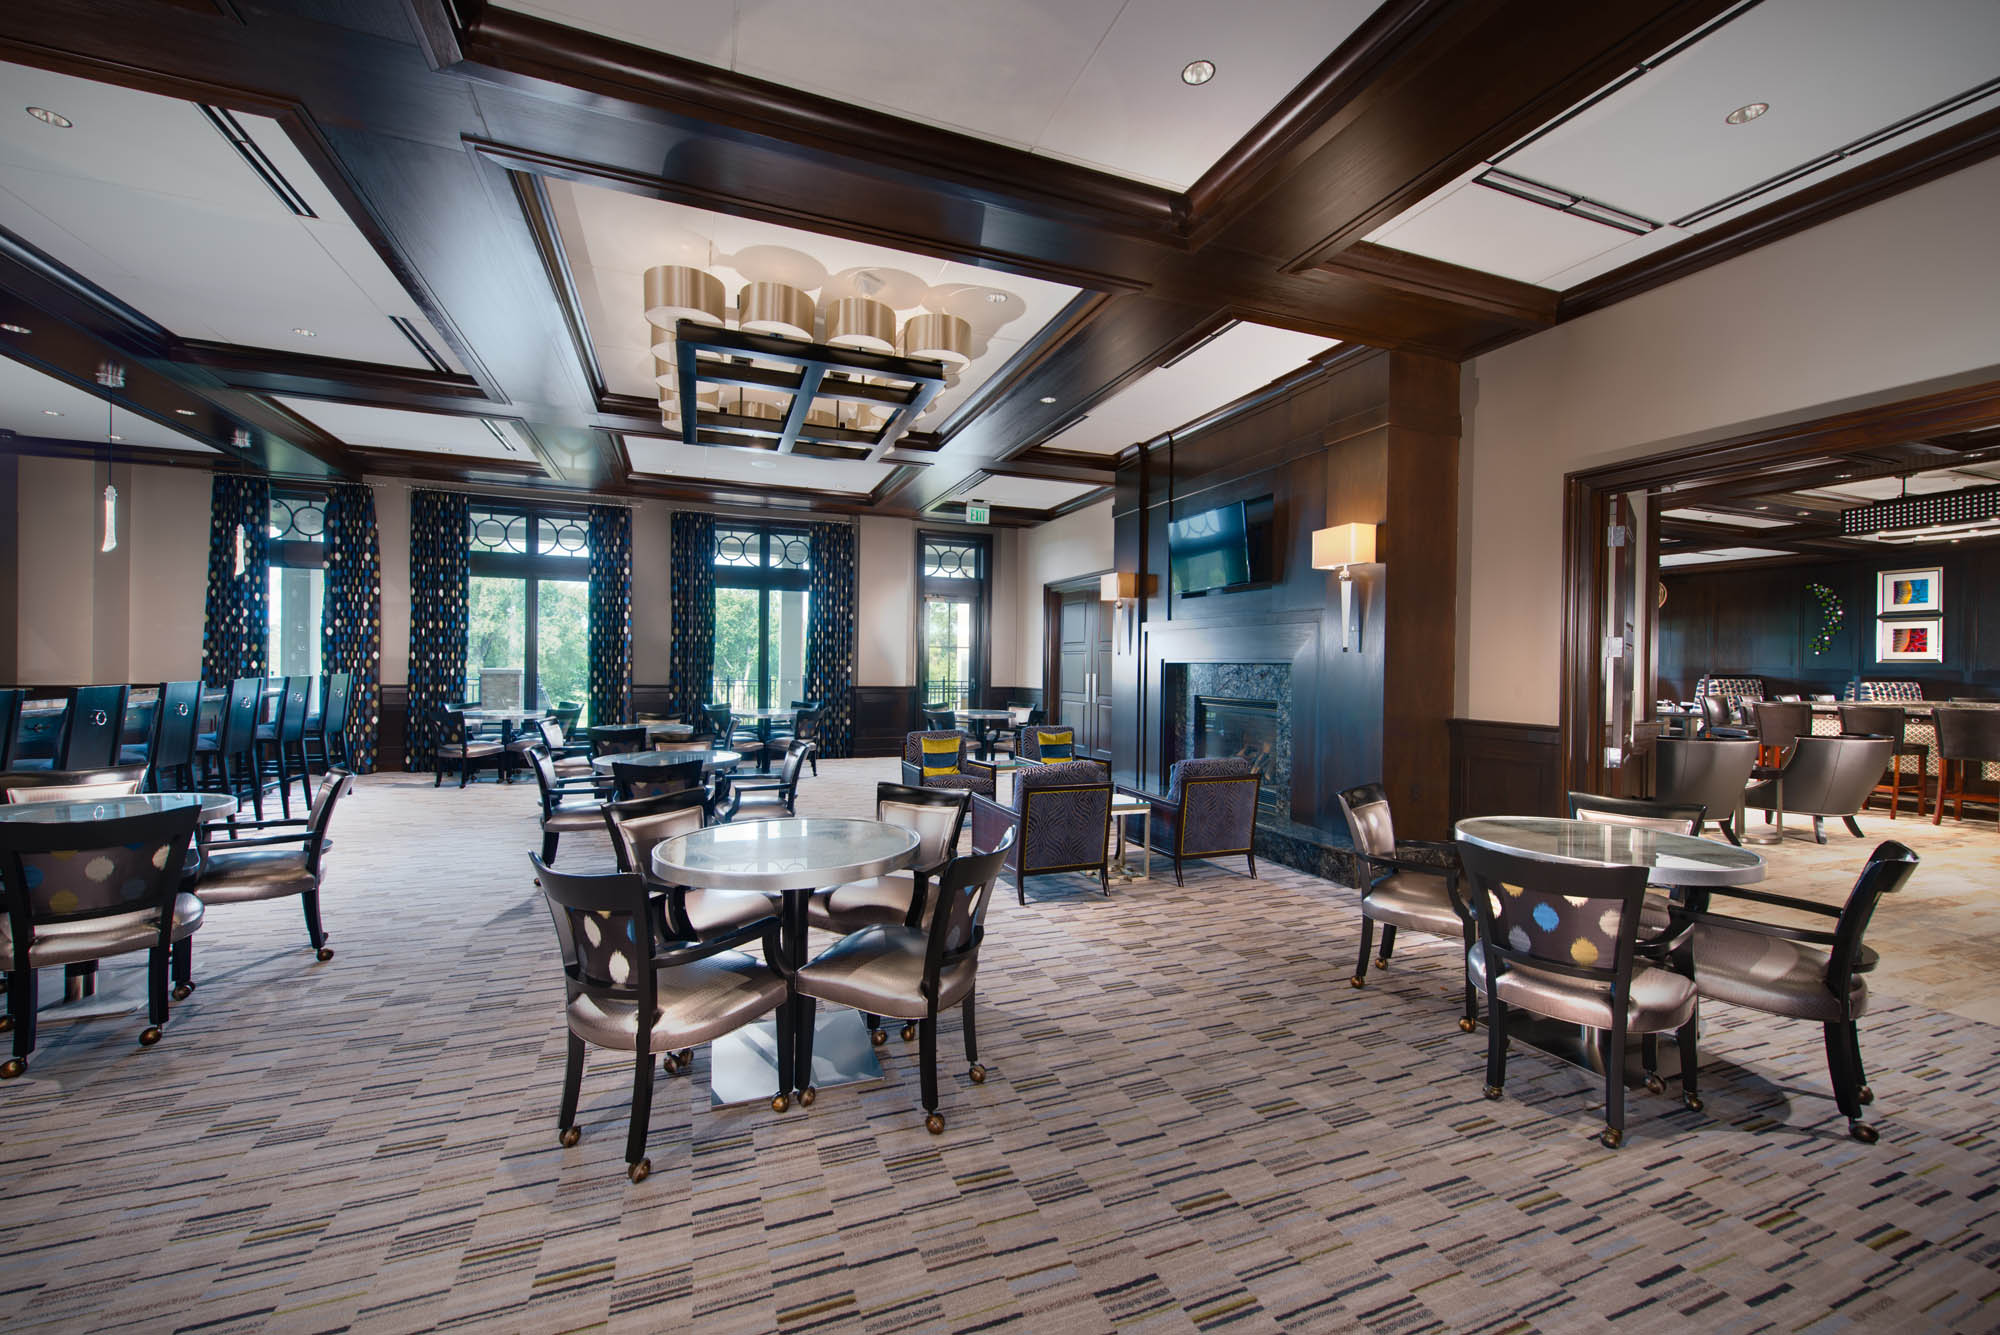 Woodmont Country Club Interior Image202539.jpg